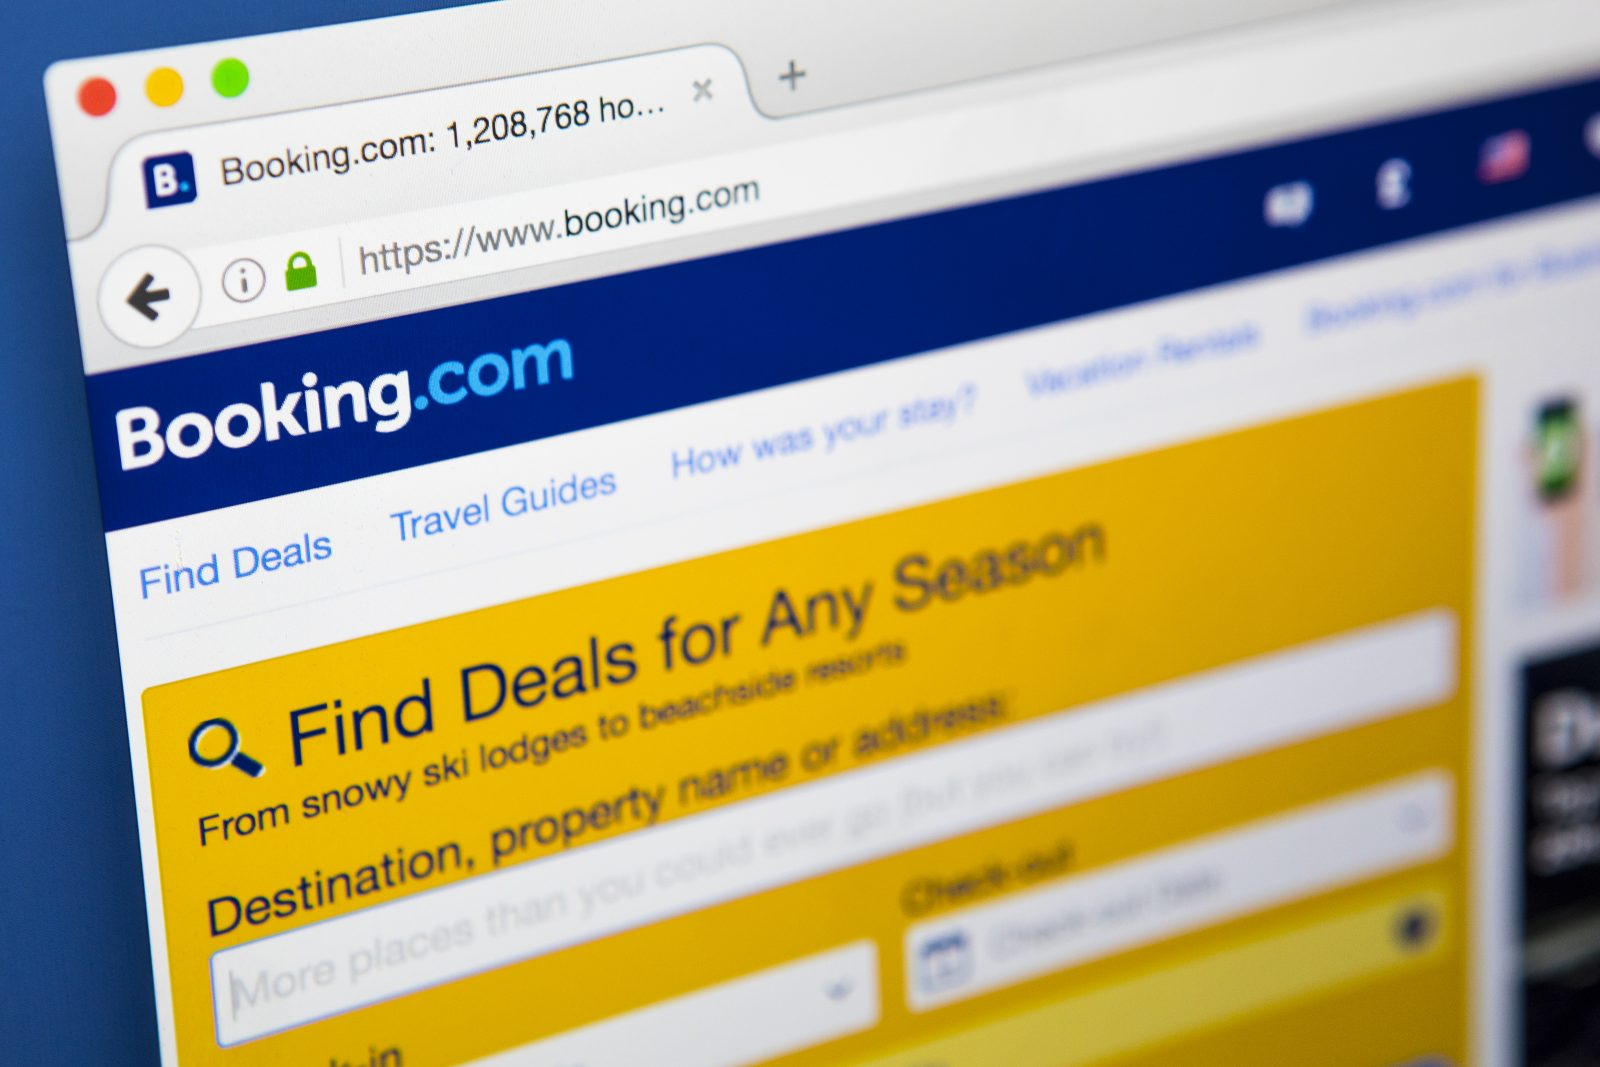 How Does Booking.com Work?